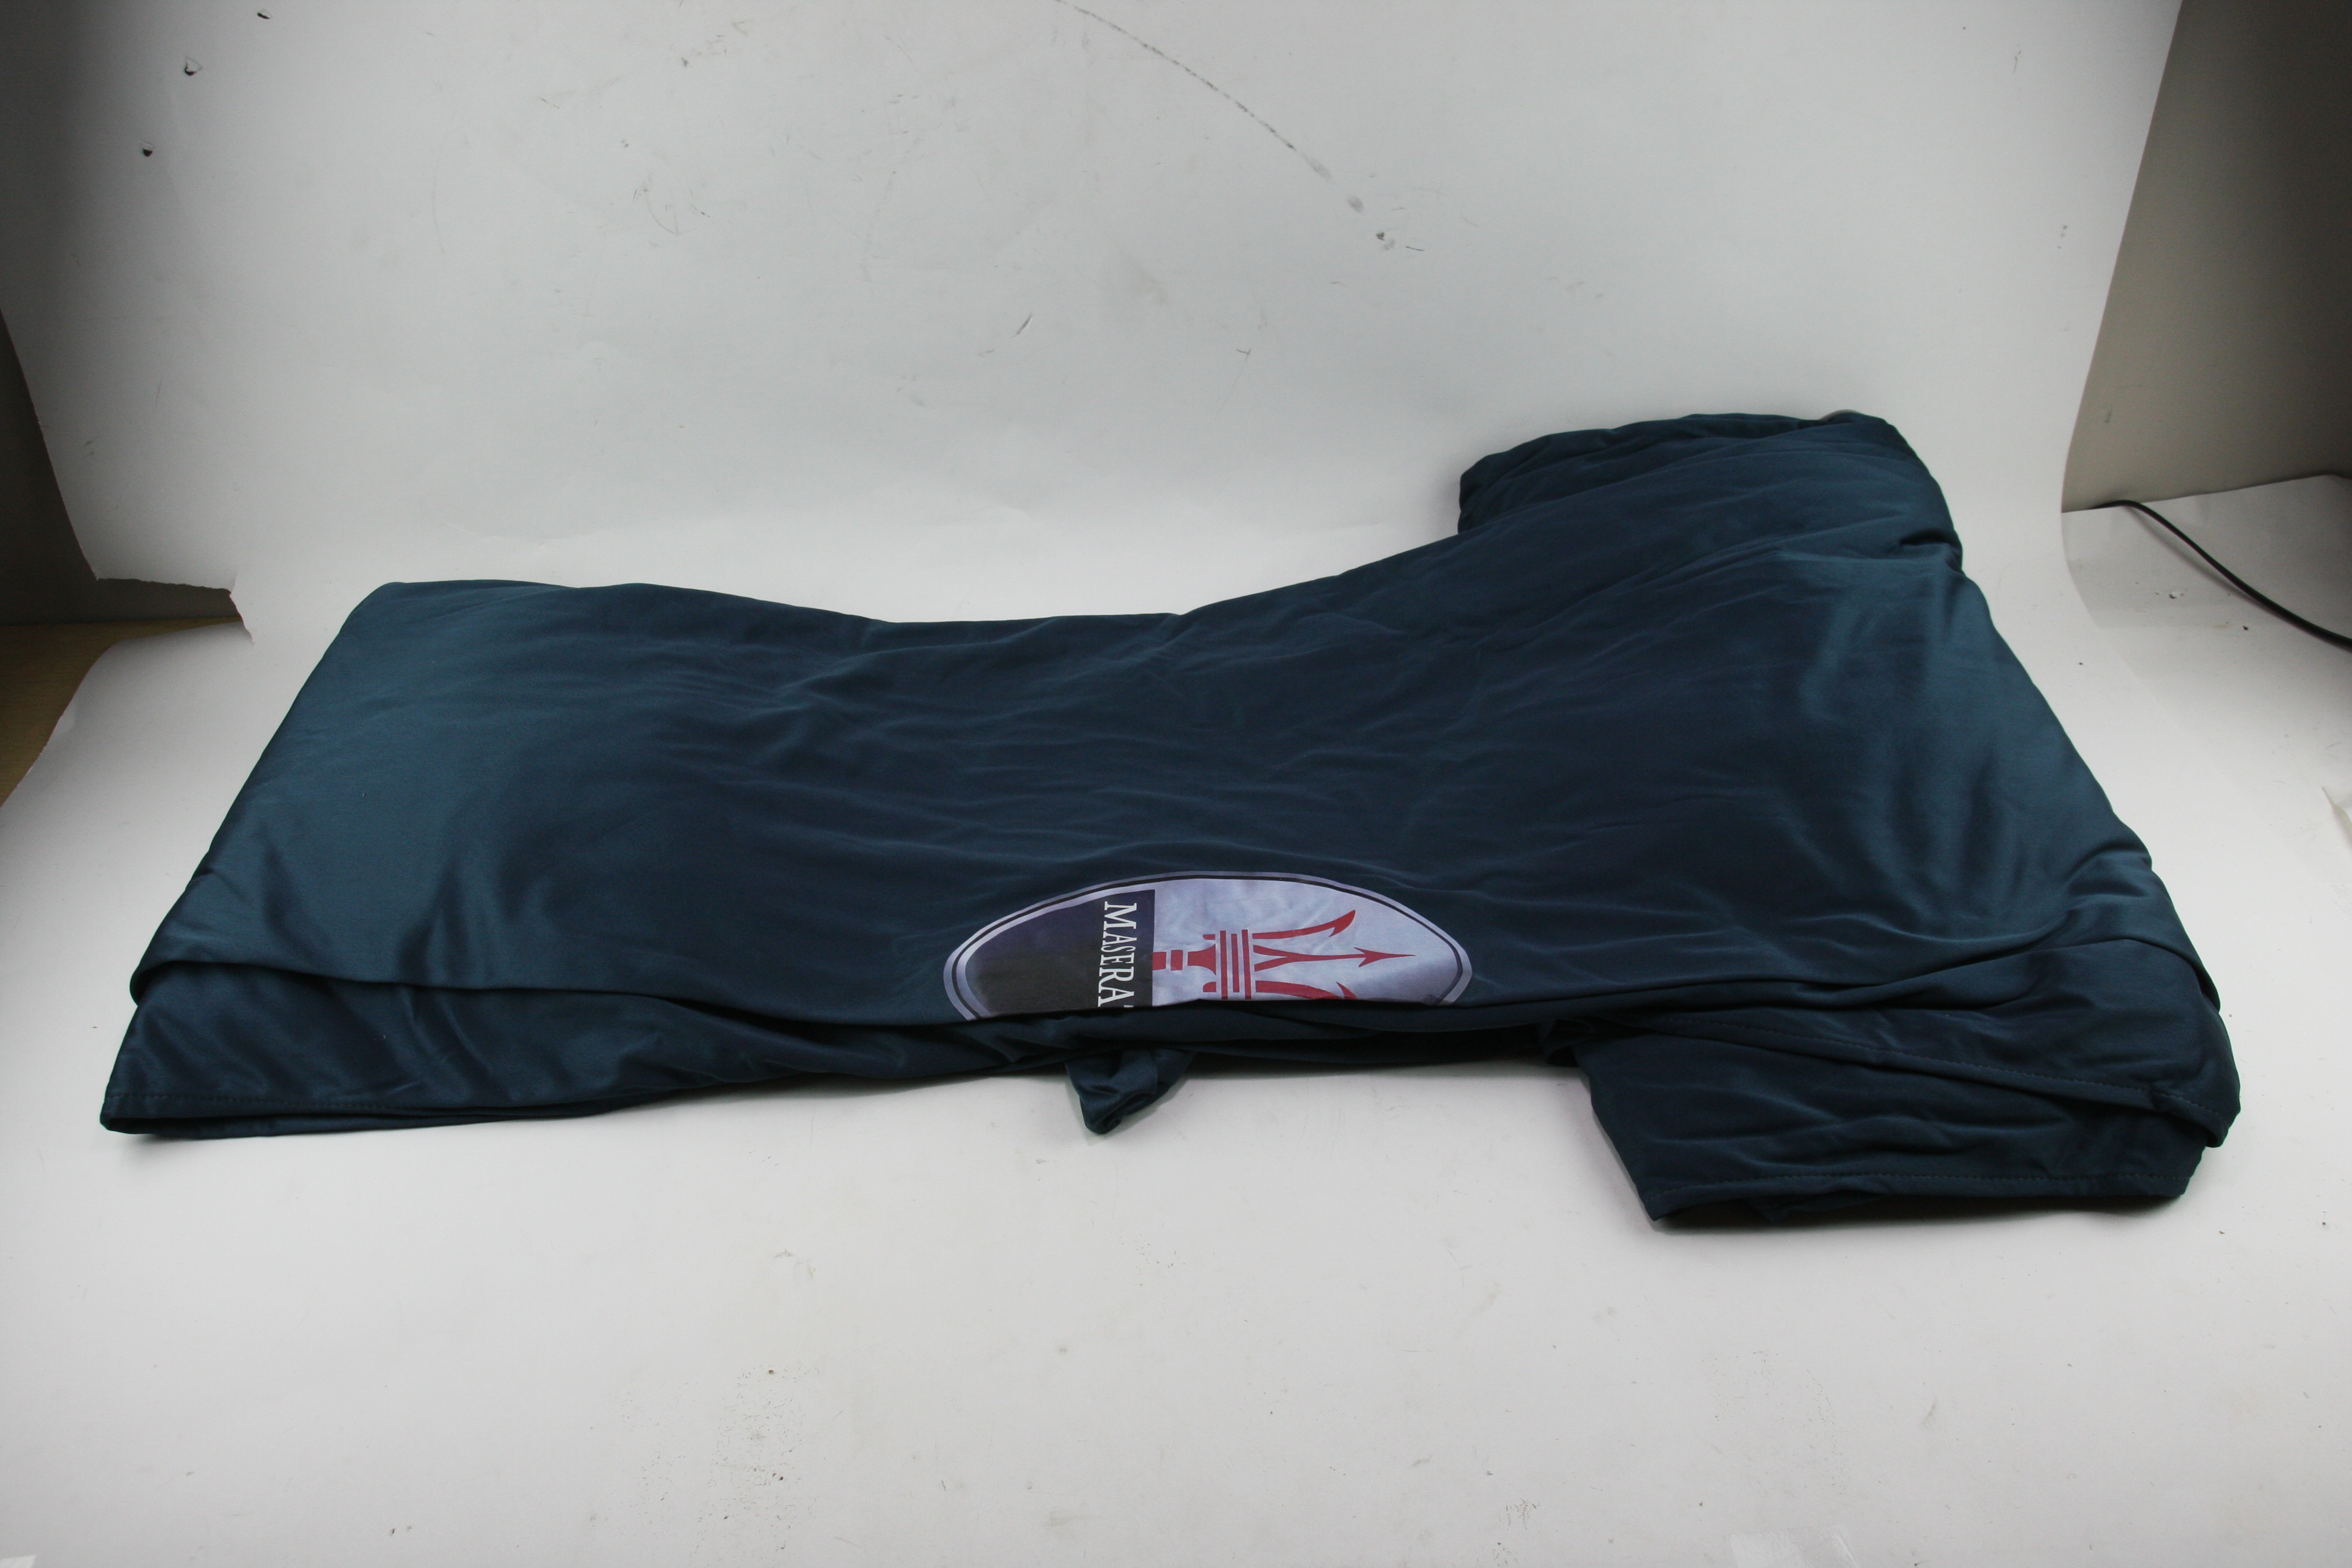 New Genuine OEM 2018119 Maserati Quattroporte Car Cover Indoor Outdoor w/ Bag - image 5